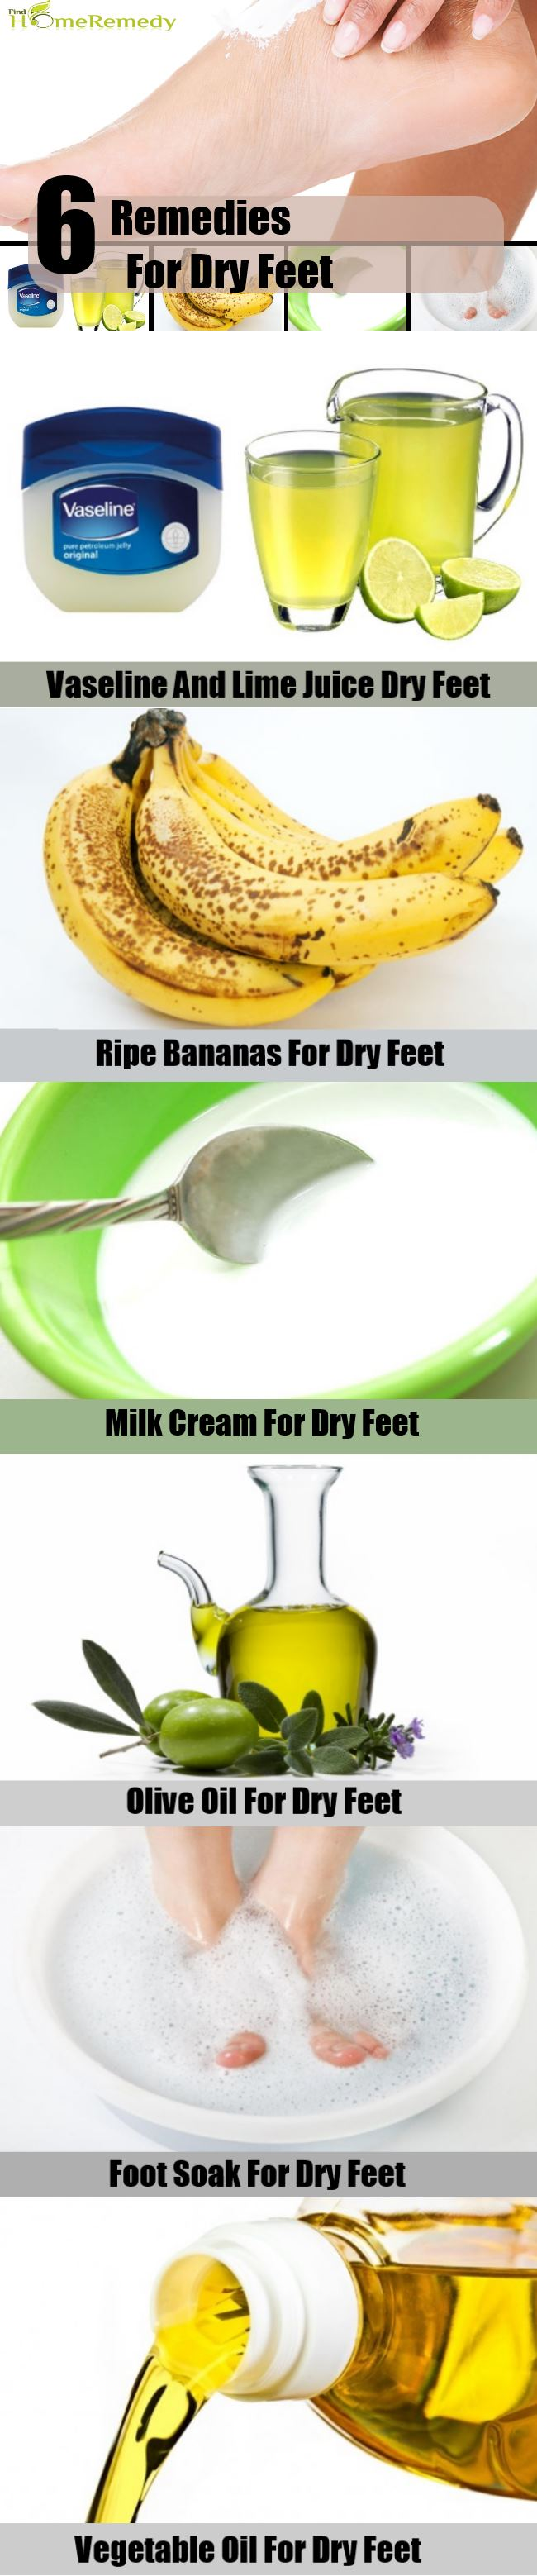 6 Remedies For Dry Feet